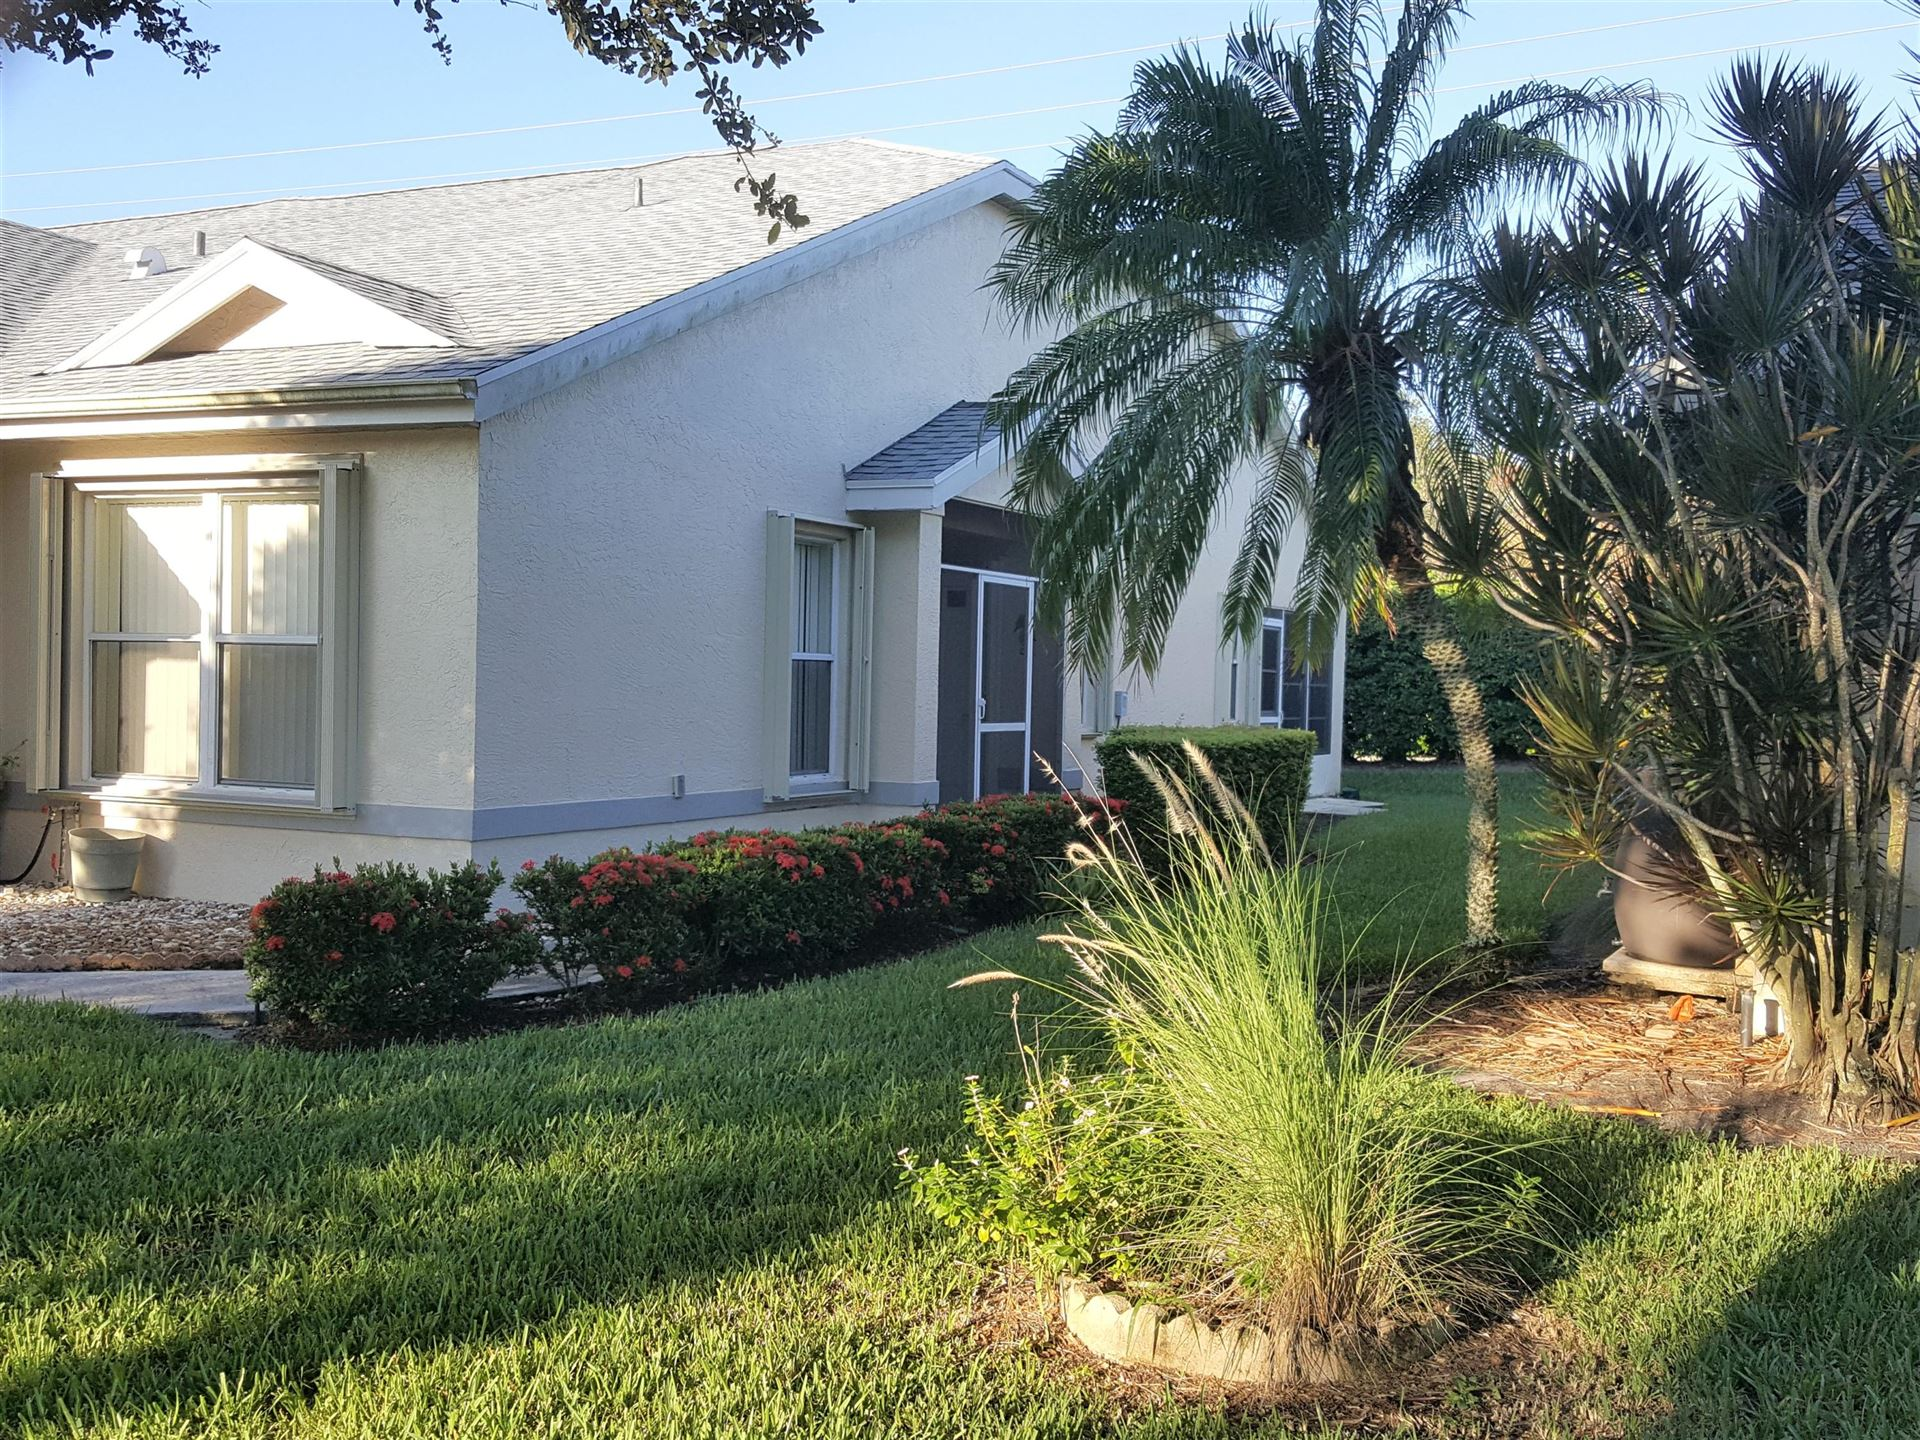 Photo of 4317 SE Brittney Circle, Port Saint Lucie, FL 34952 (MLS # RX-10663089)